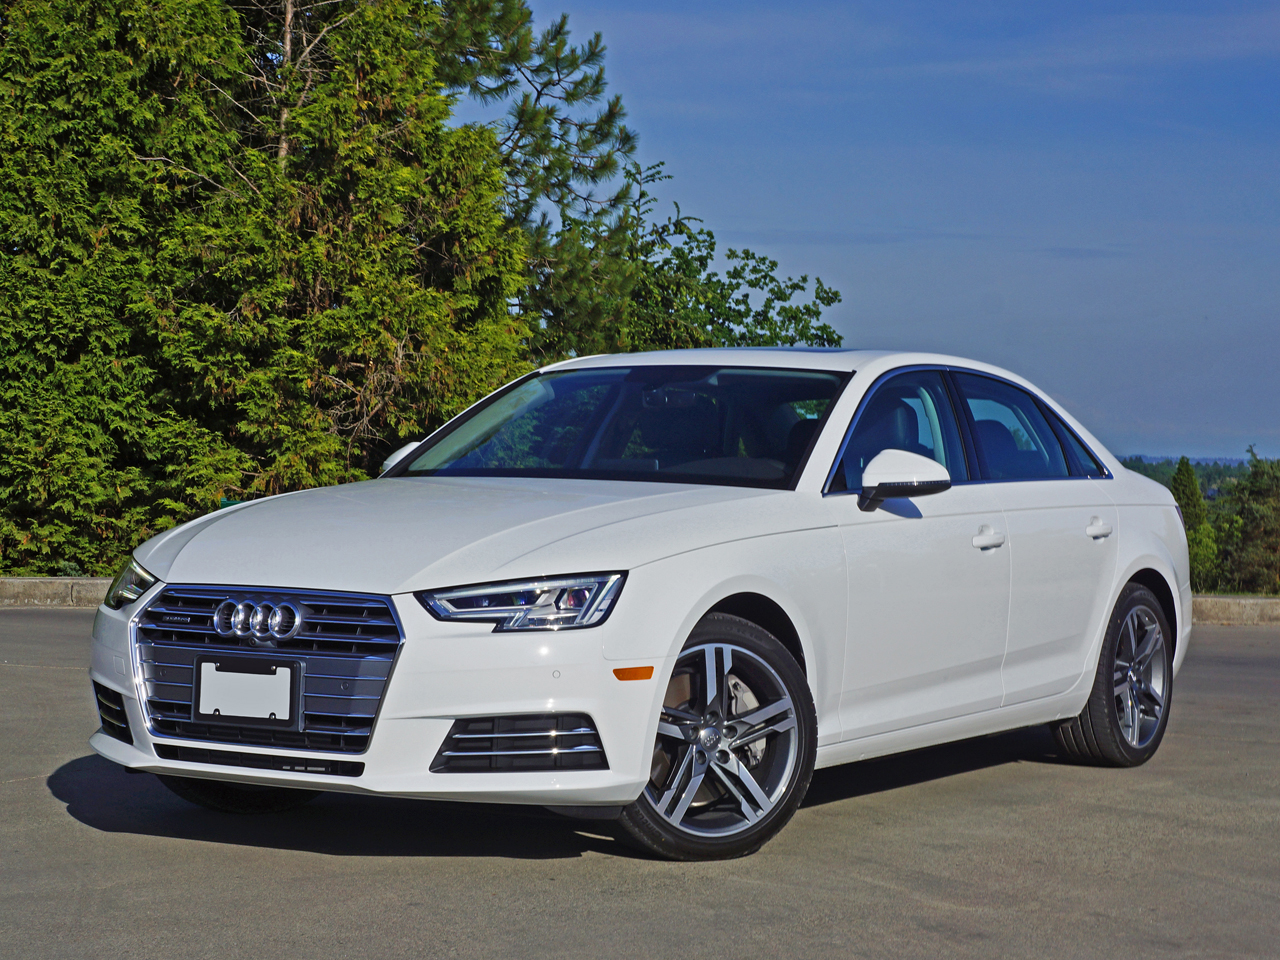 2017 audi a4 quattro review